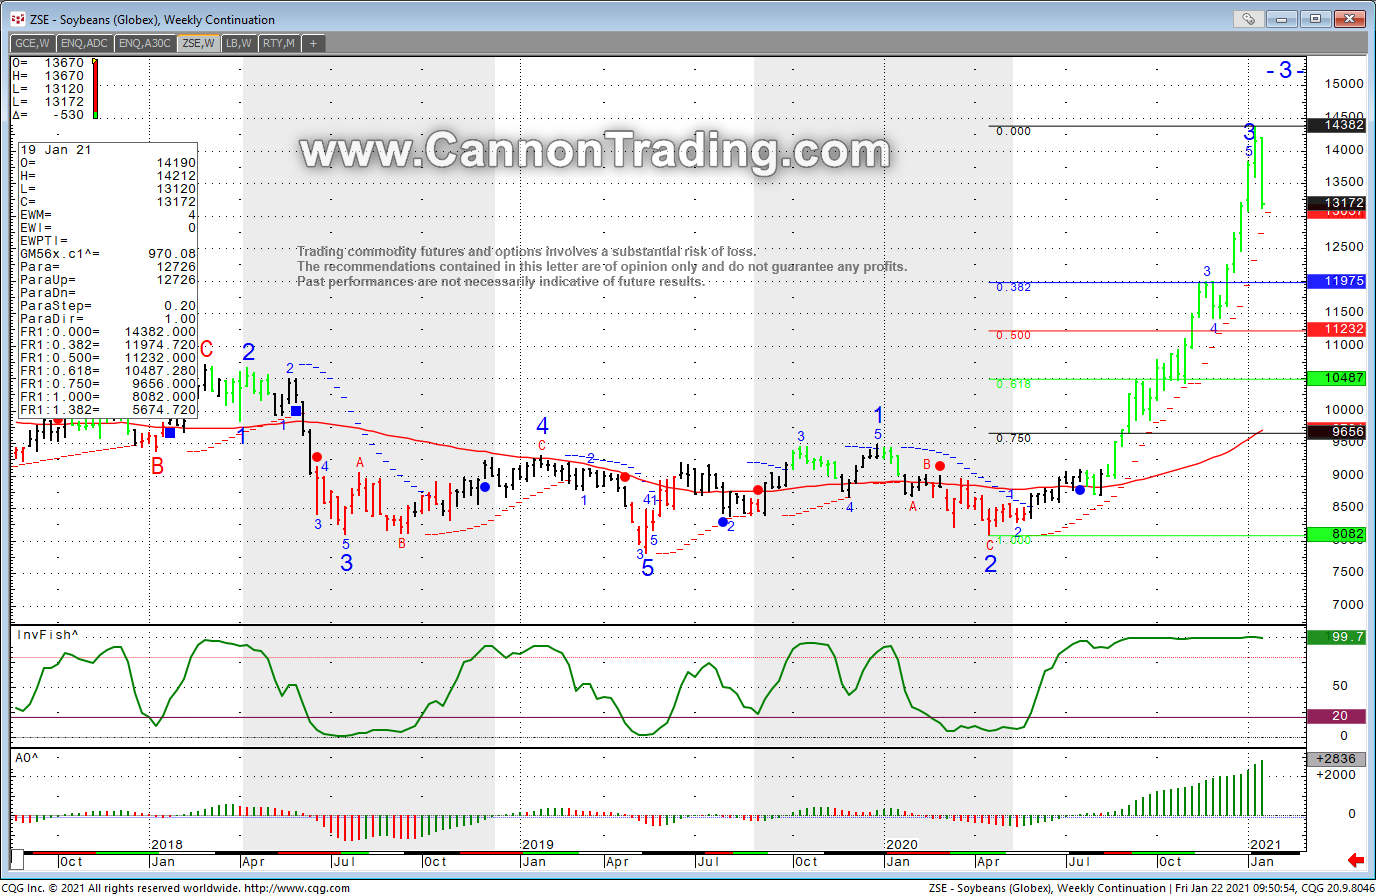 Soybean Futures Continuation Chart